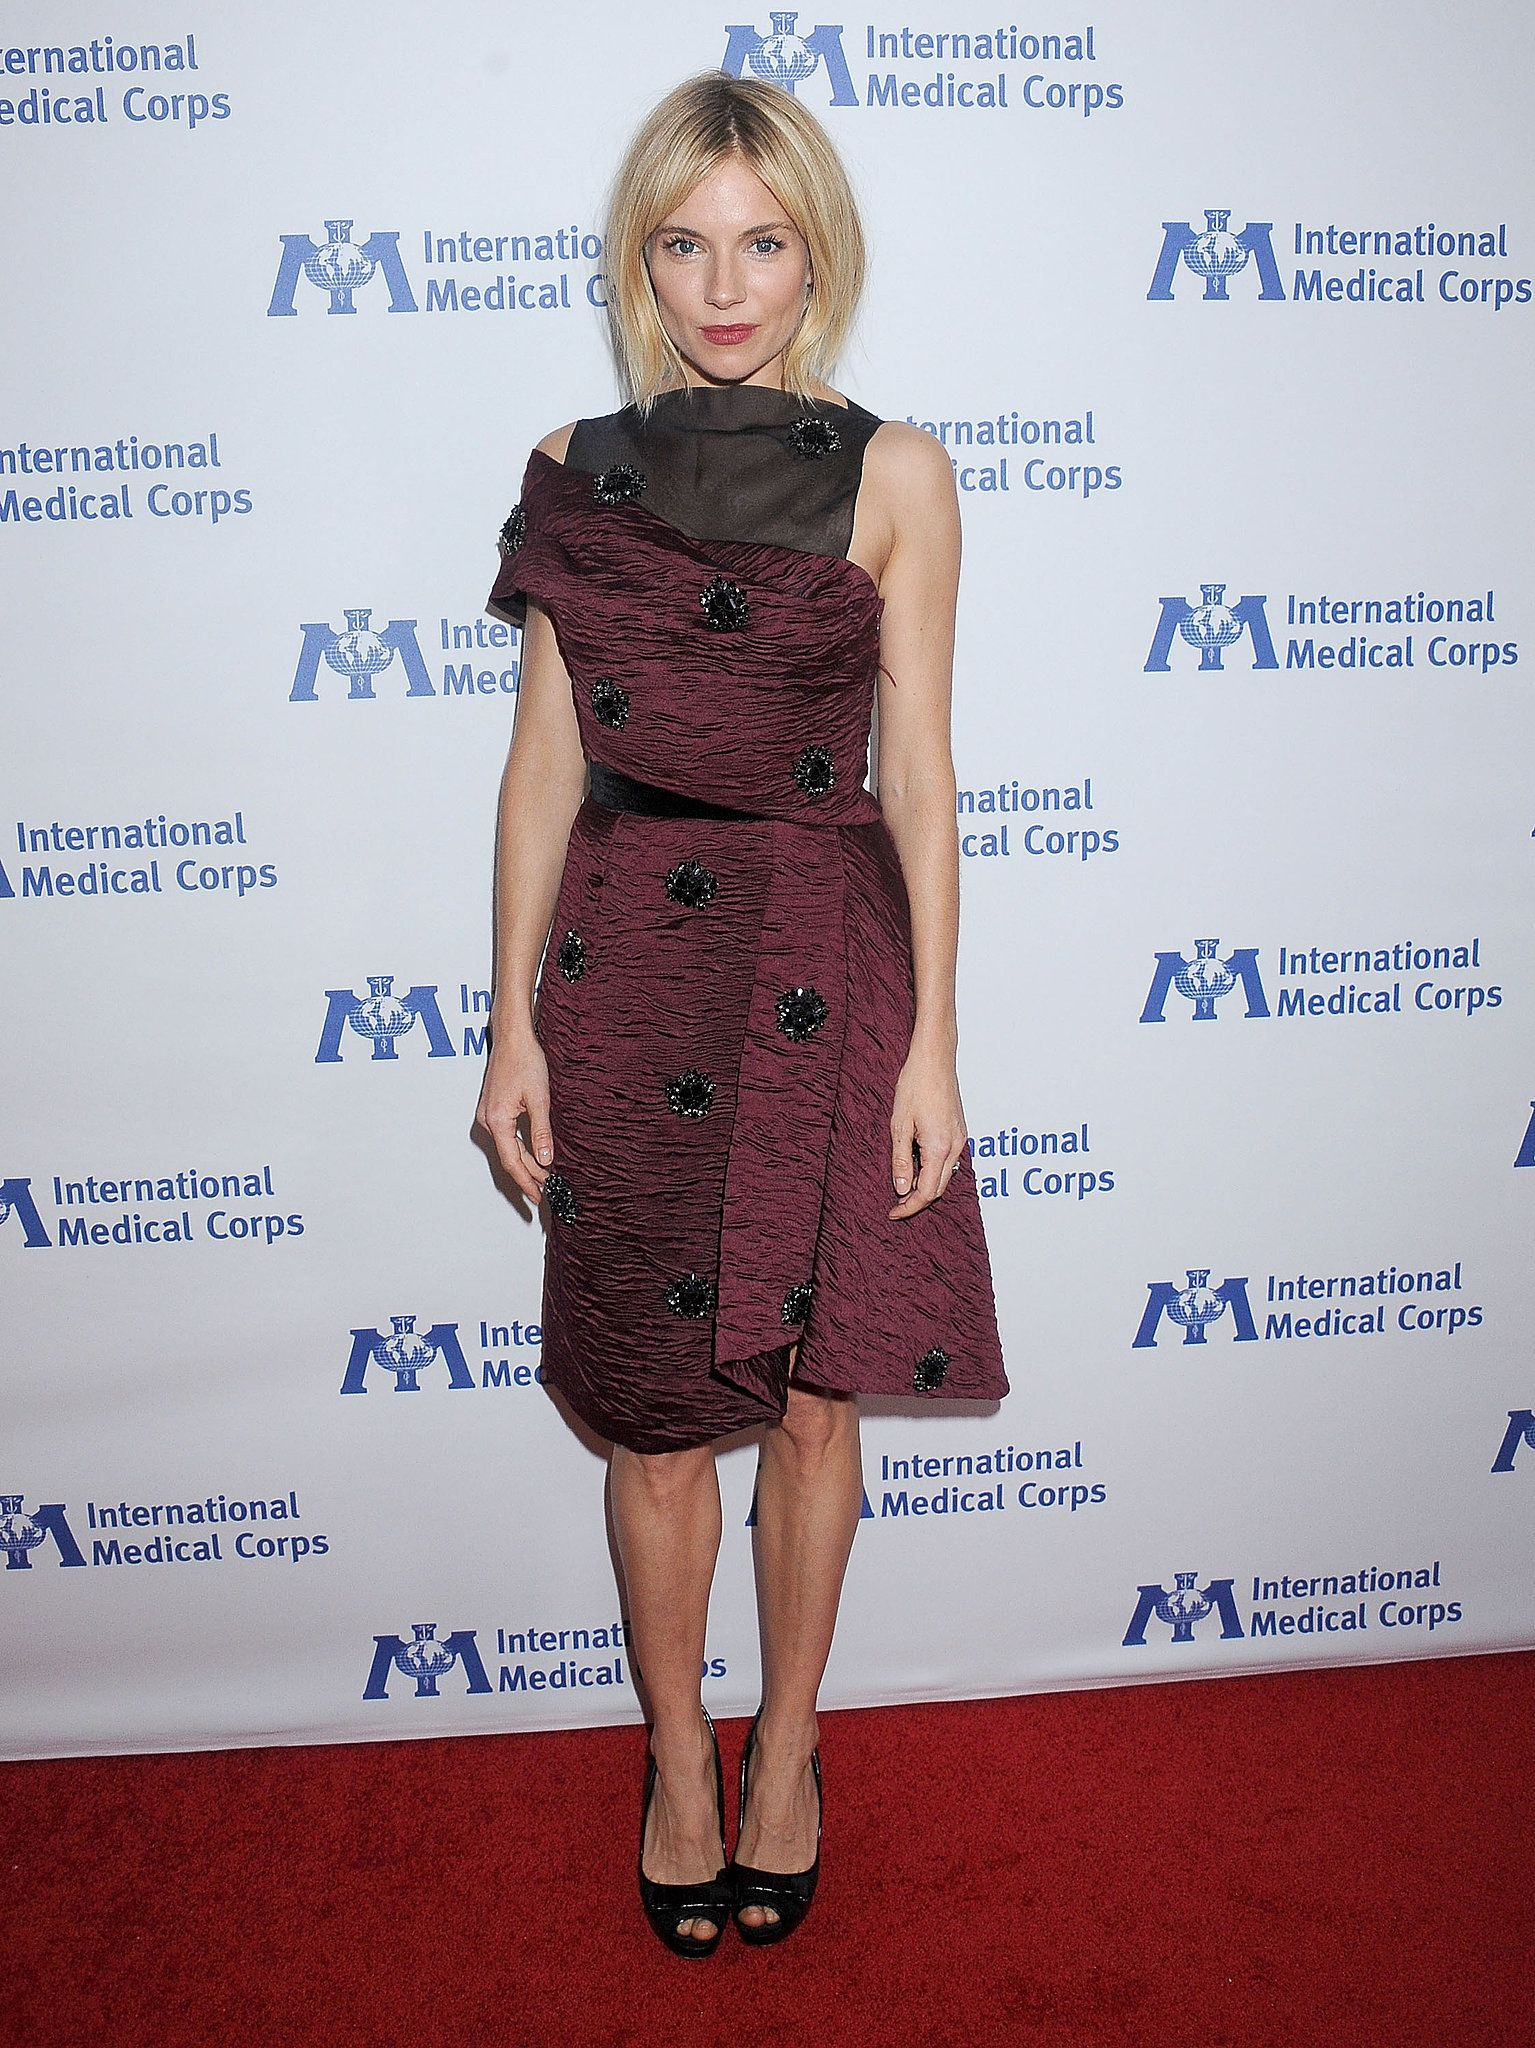 Sienna Miller stepped out in a chic burgundy dress for the International Medical Corps' dinner in Beverly Hills.